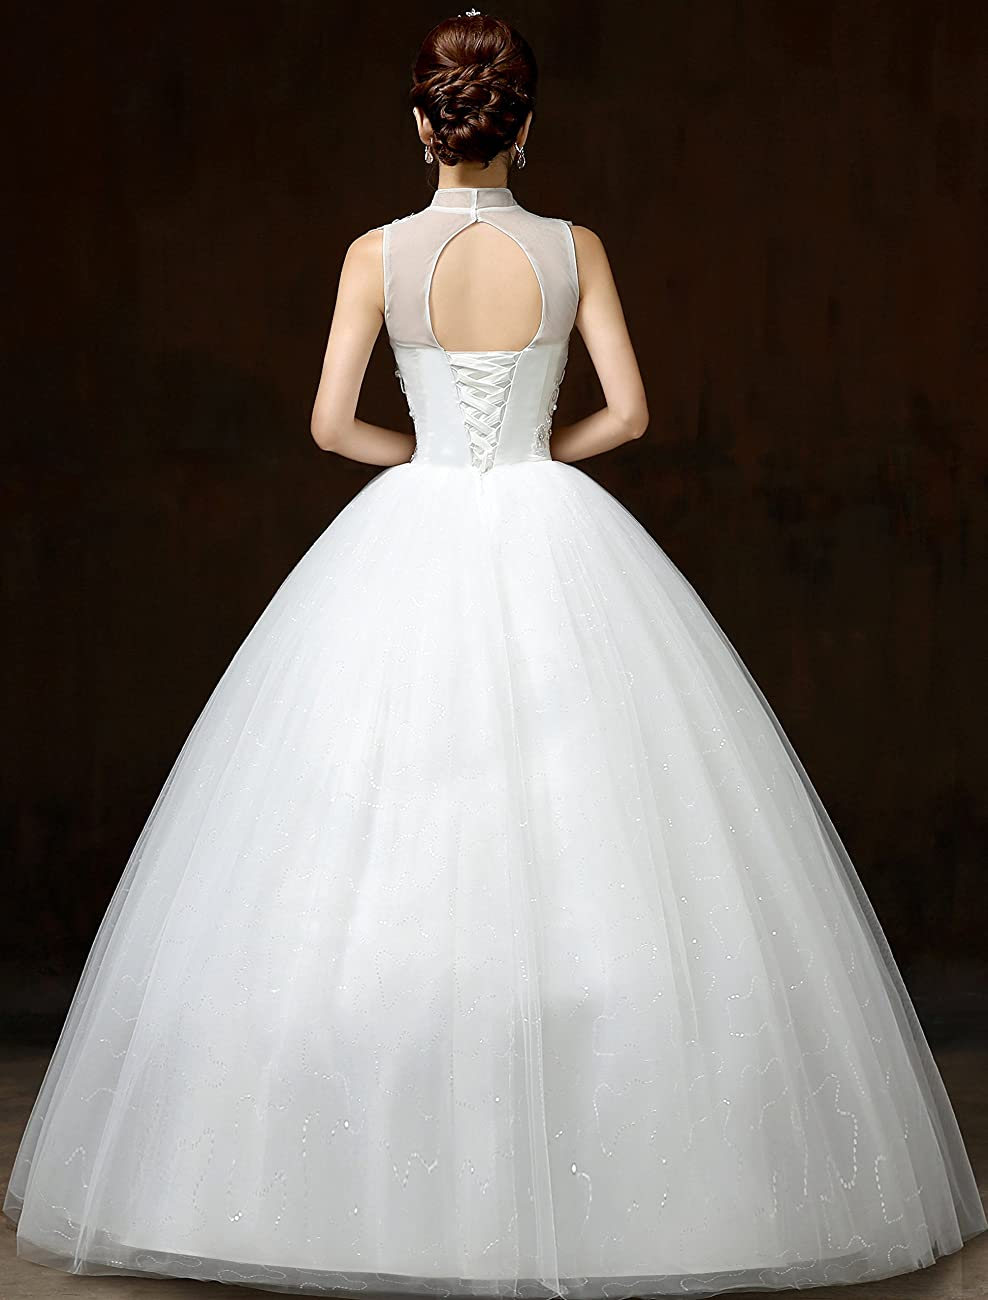 Clover Bridal Vintage High Collar Pearl Wedding Dress for Bride White Under 100 5